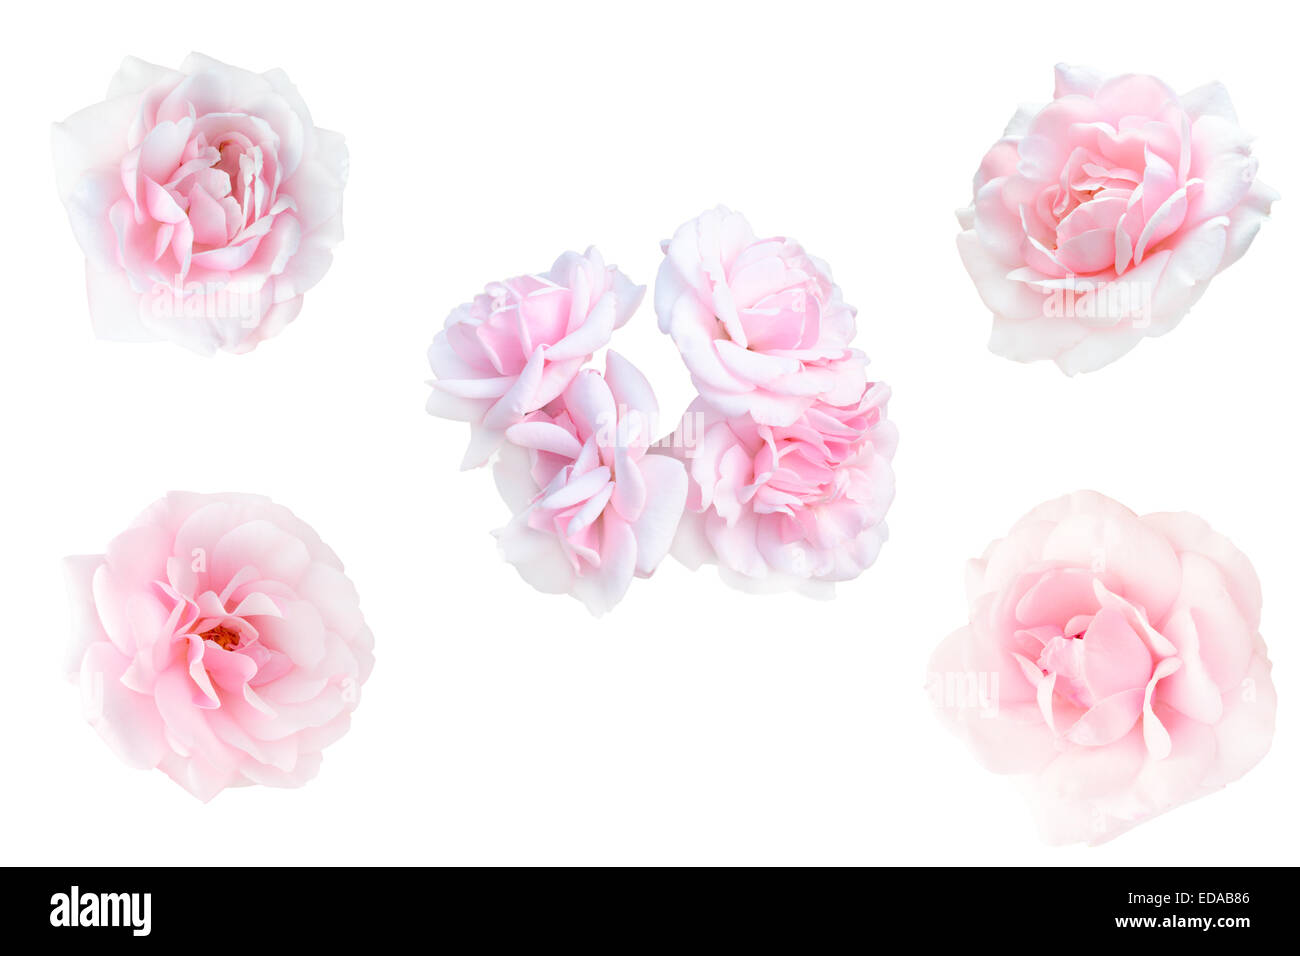 collage of pink roses - Stock Image